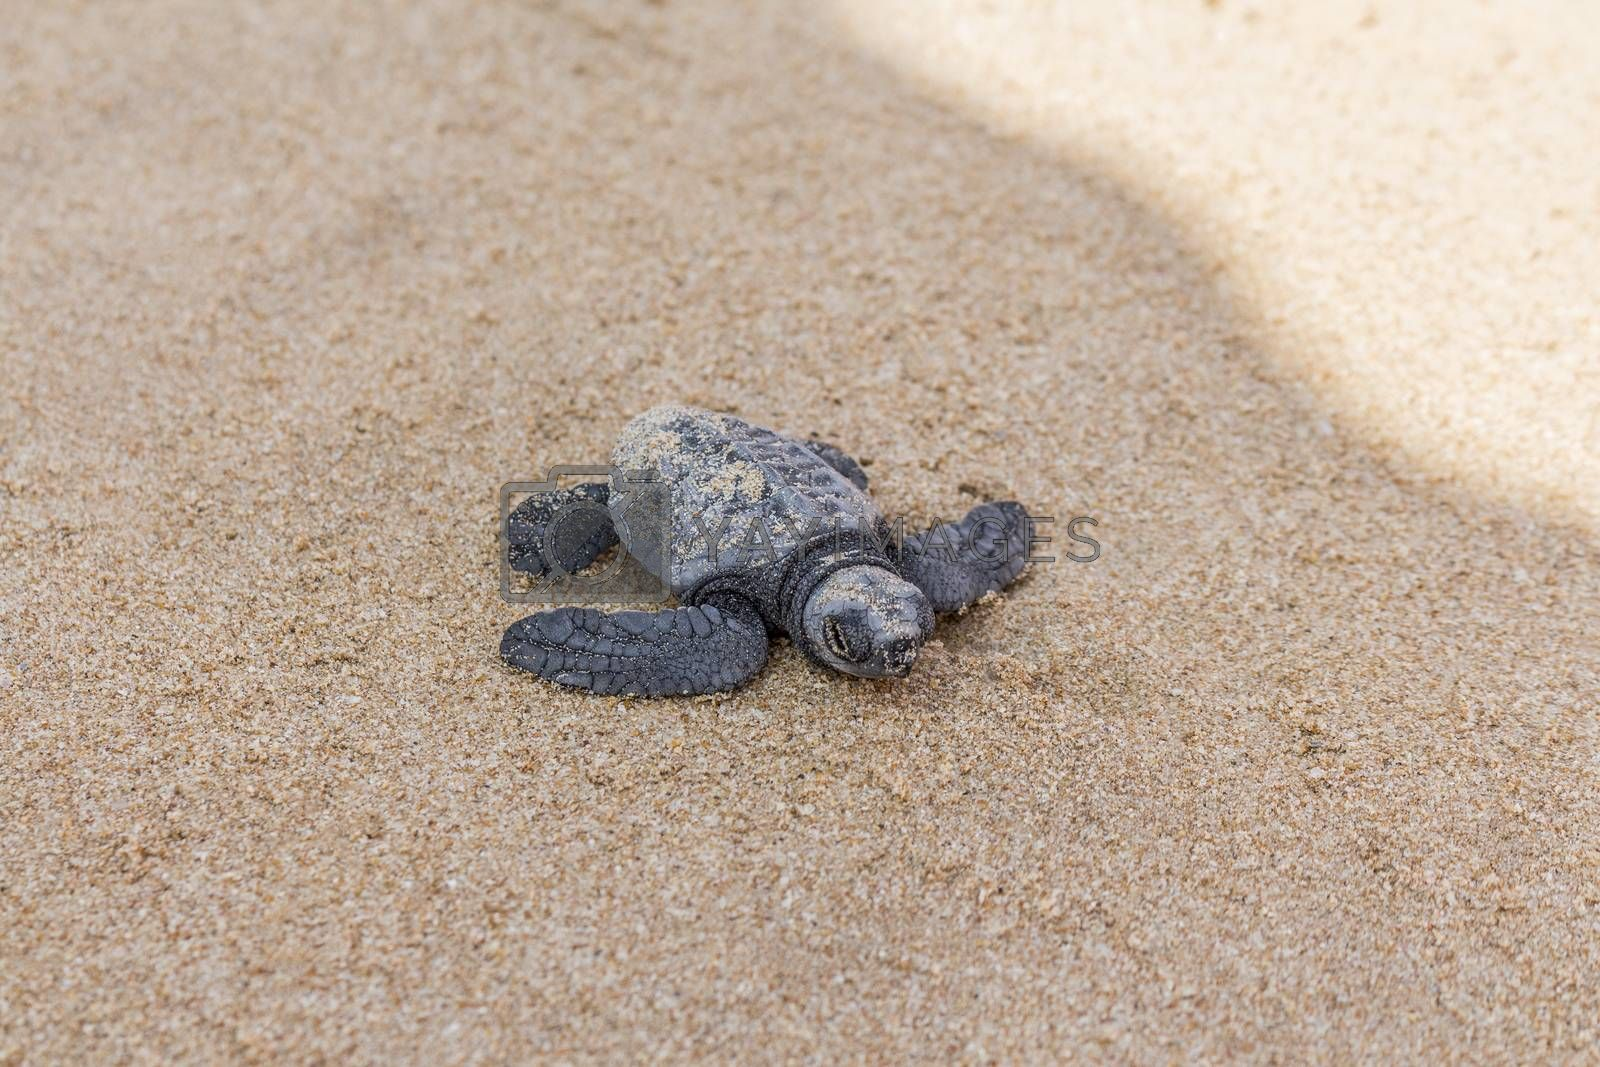 Freshly hatched turtle baby at the Mirissa Beach in Sri Lanka.